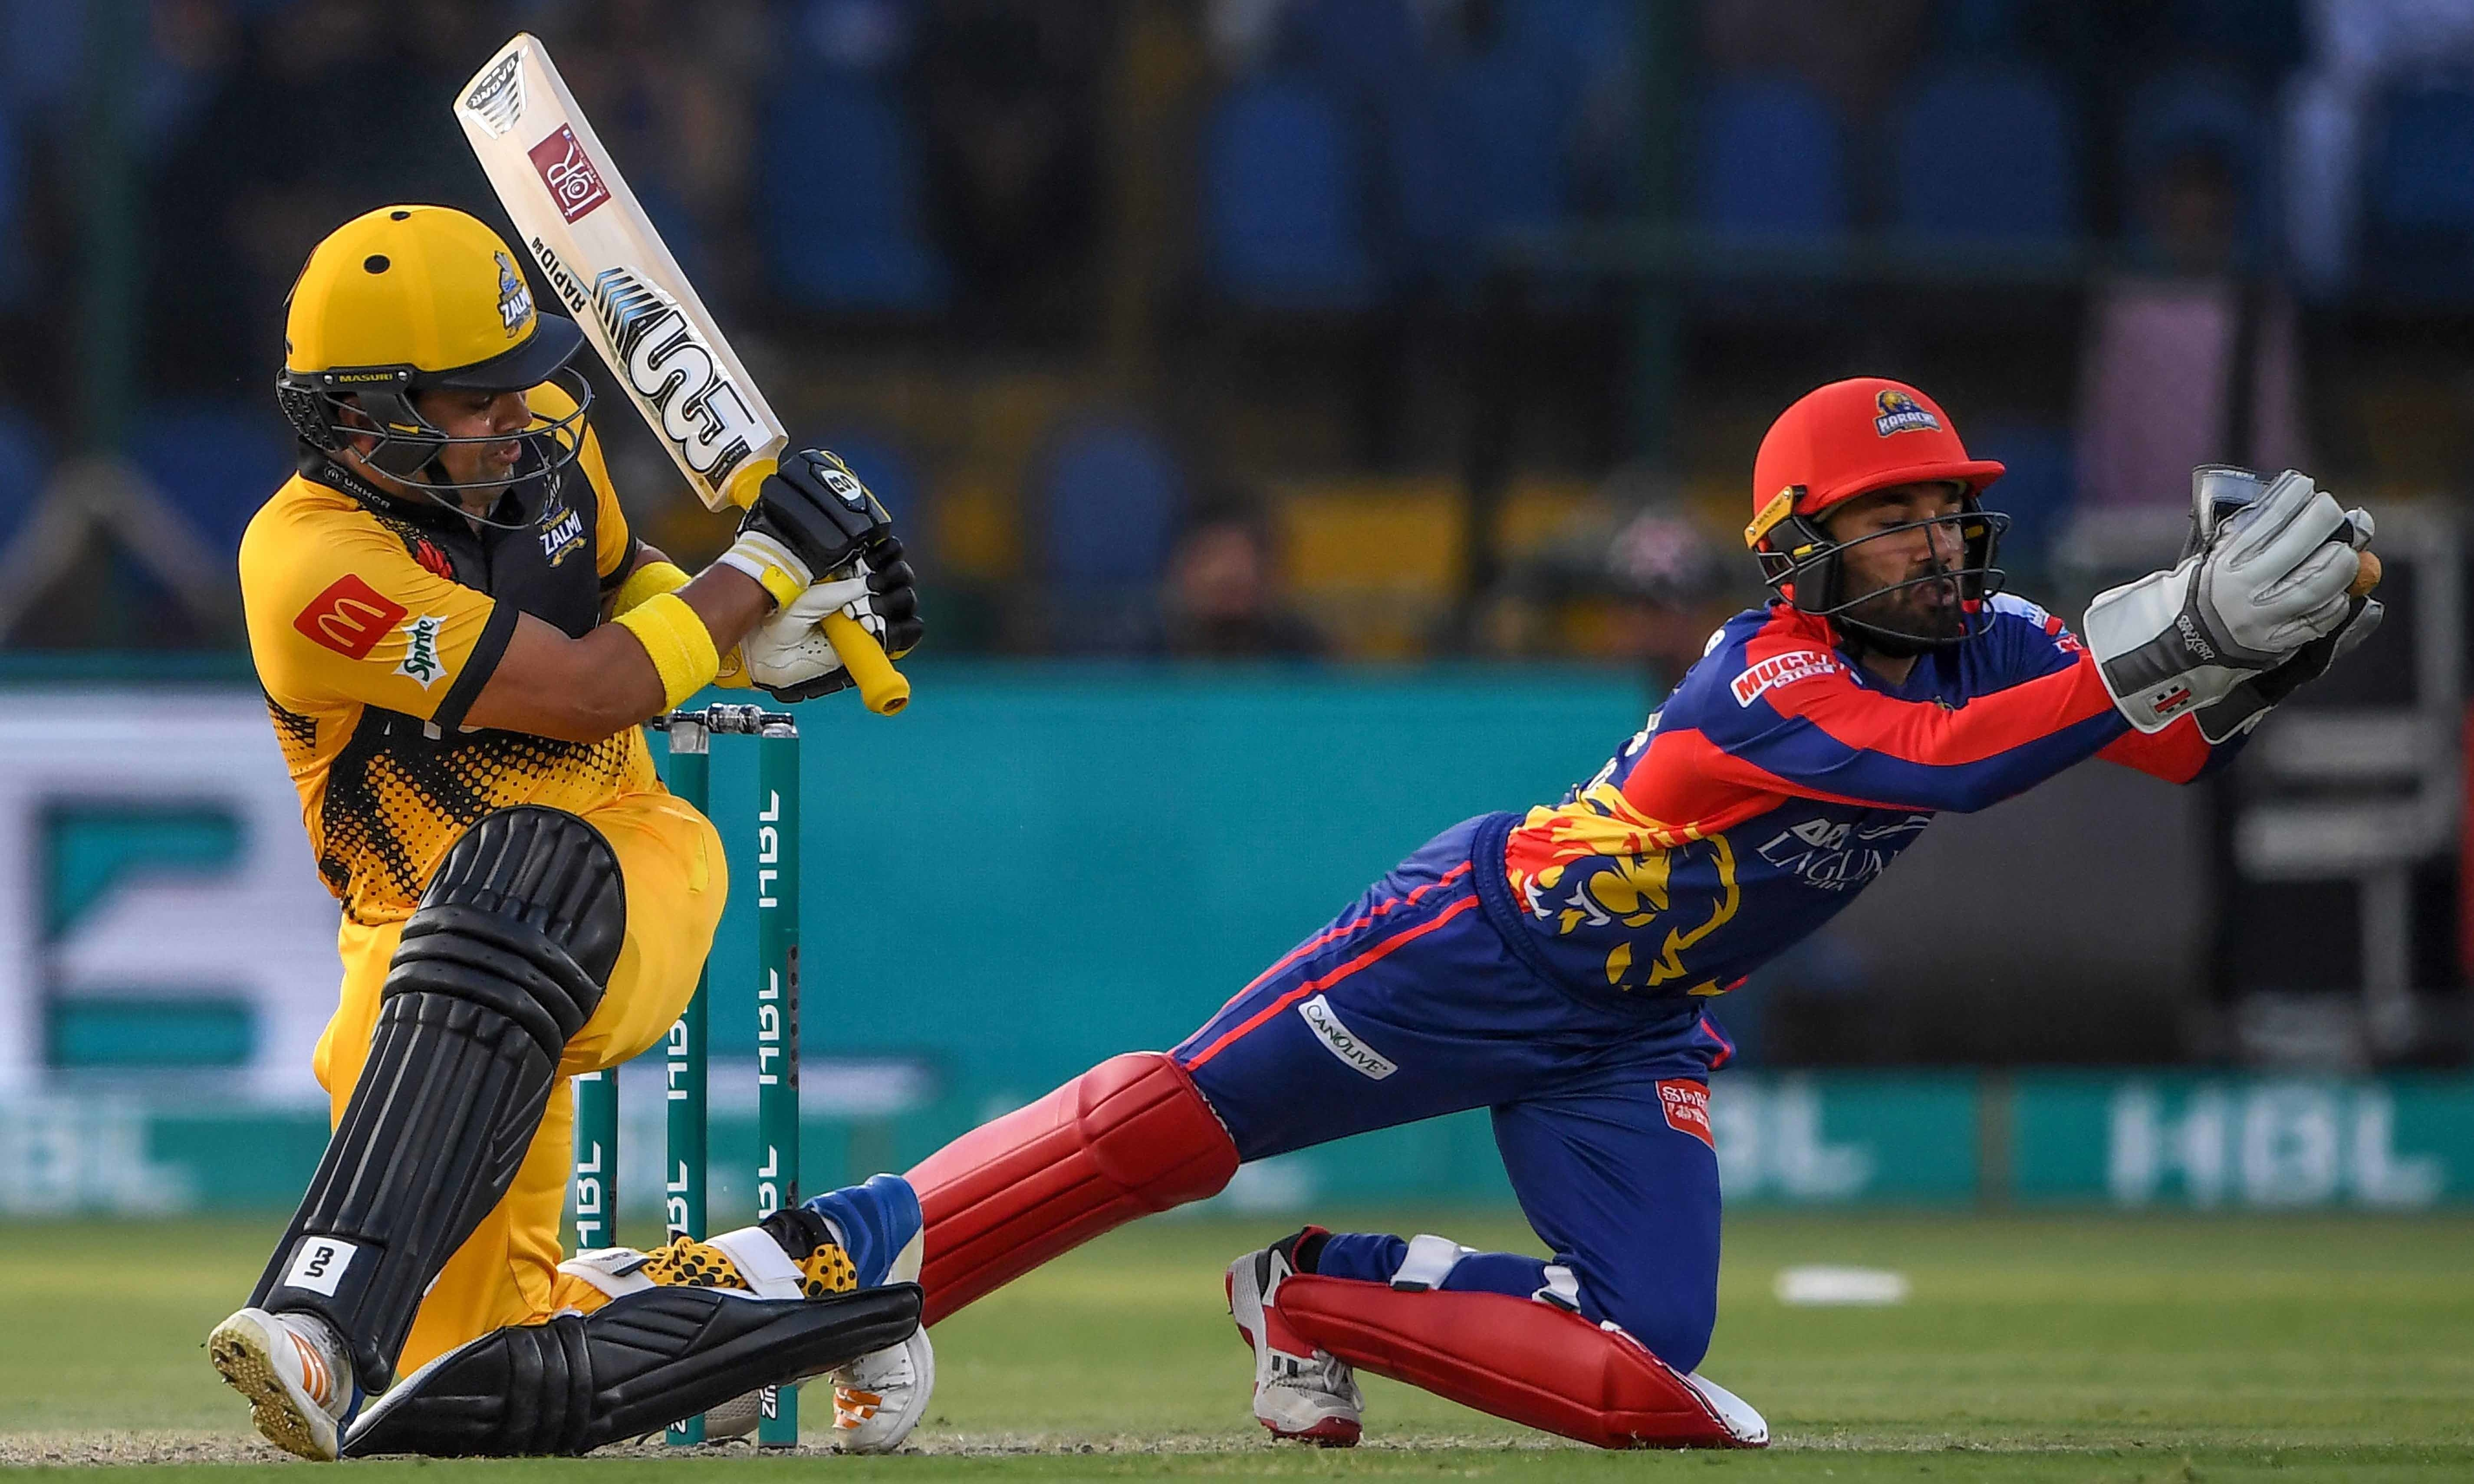 Karachi Kings' Mohammad Rizwan (R) fields the ball after playing by Peshawar Zalmi's Kamran Akmal (L) during the Pakistan Super League (PSL) Twenty20 cricket match between Peshawar Zalmi and Karachi Kings at the National Cricket Stadium in Karachi on February 21, 2020. (Photo by Asif HASSAN / AFP) — AFP or licensors